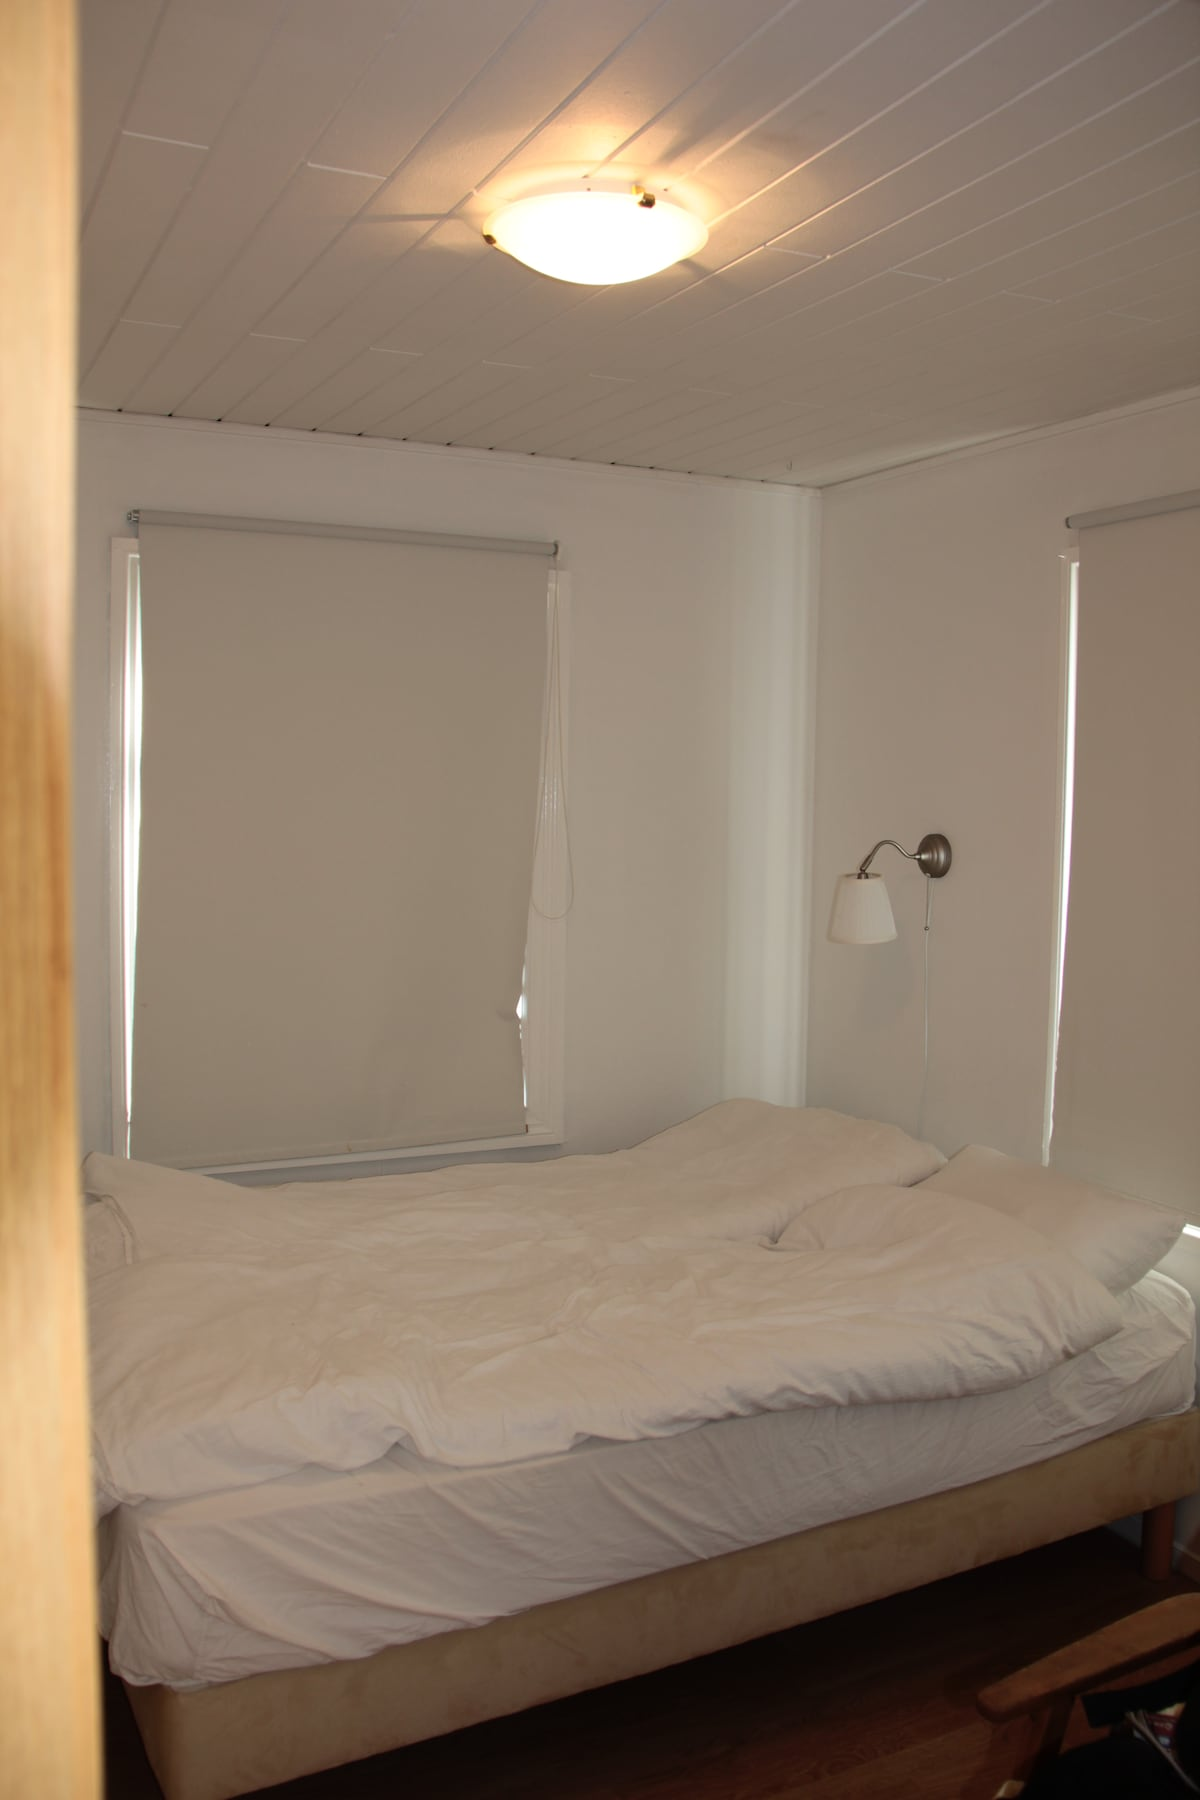 This bedroom has a small double bed.